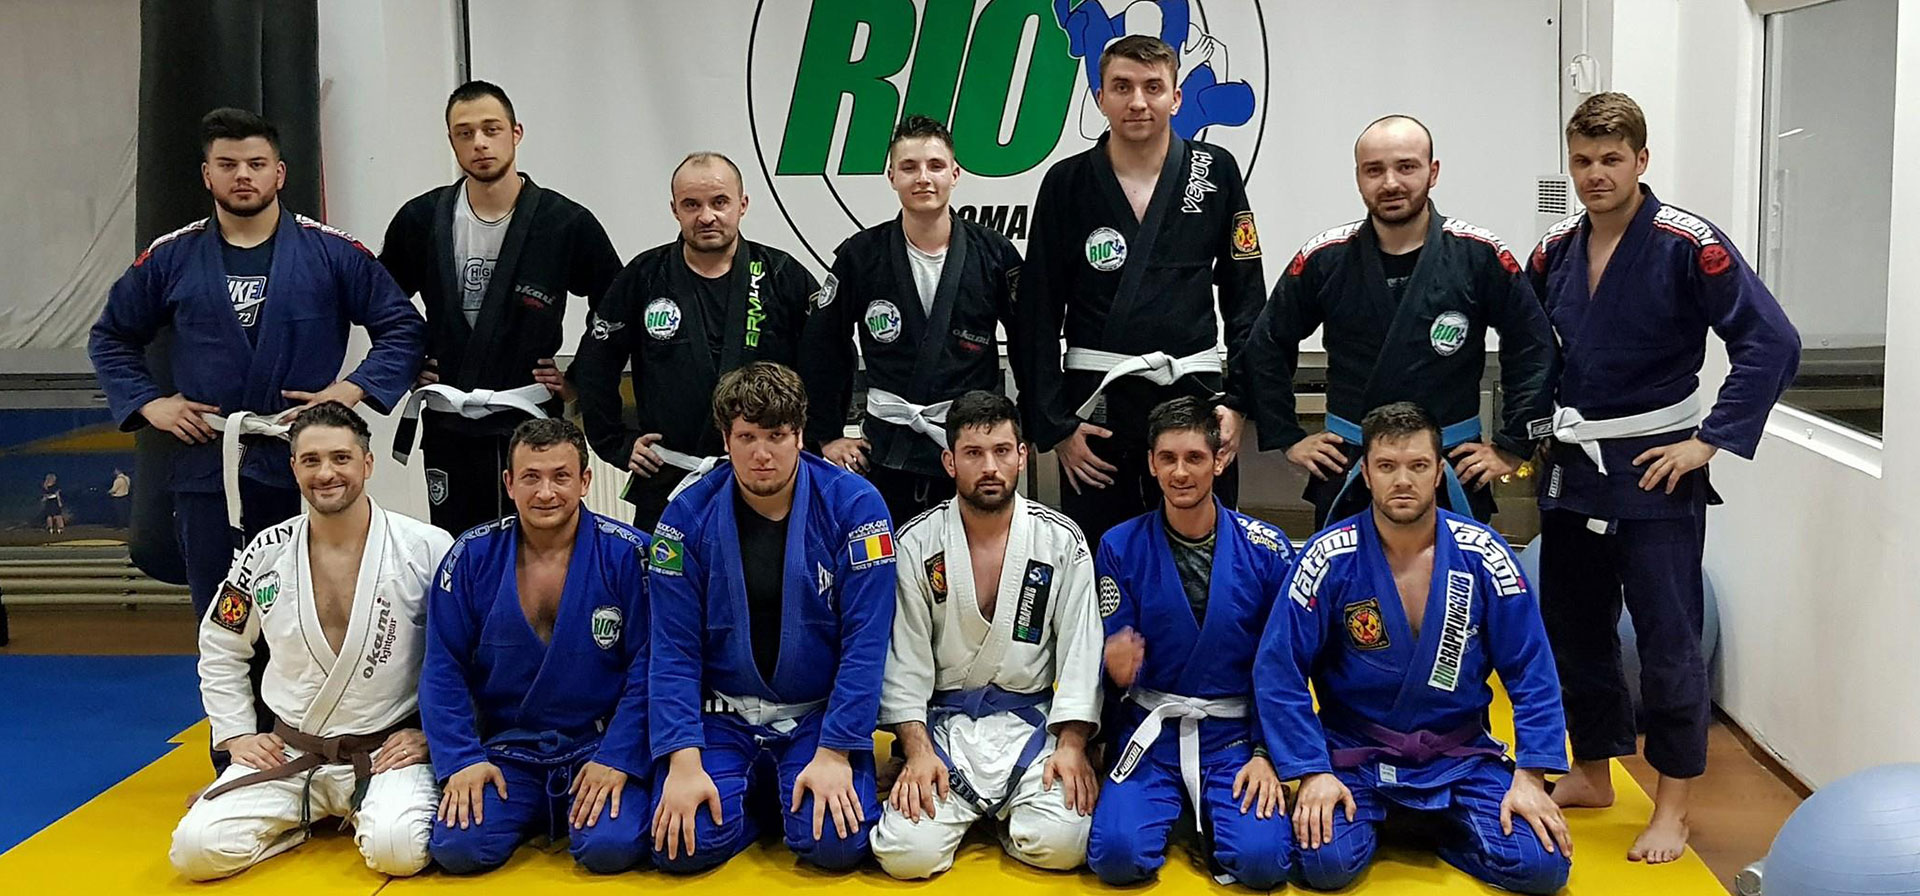 Rio-Grappling-Club-Romania